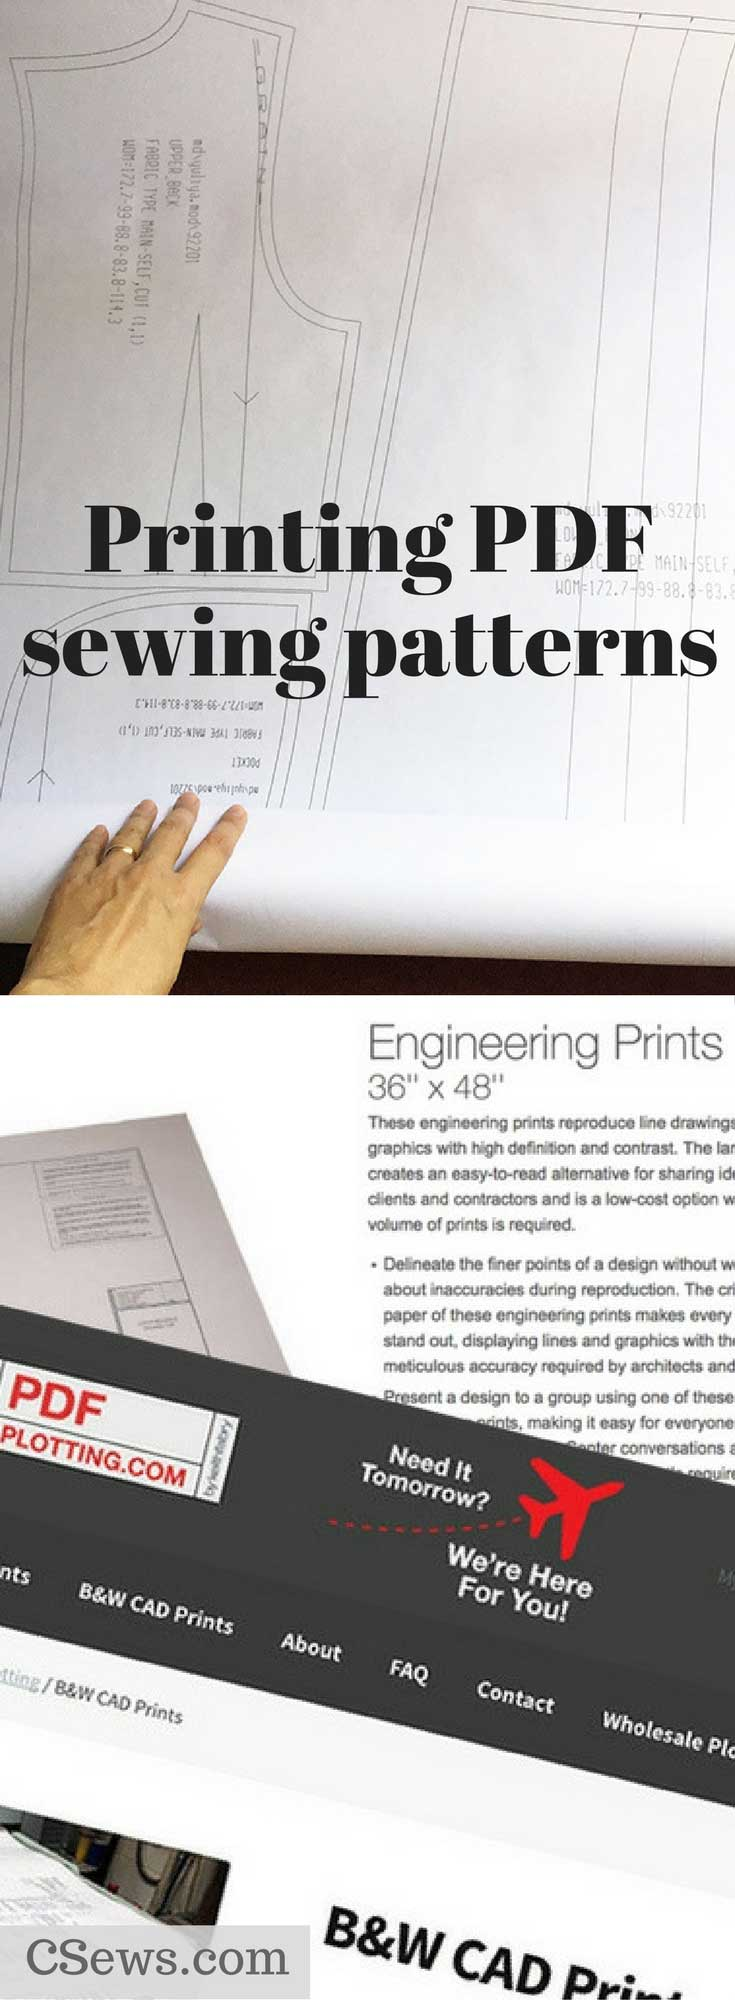 Printing PDF sewing patterns - here are some options in the U.S.